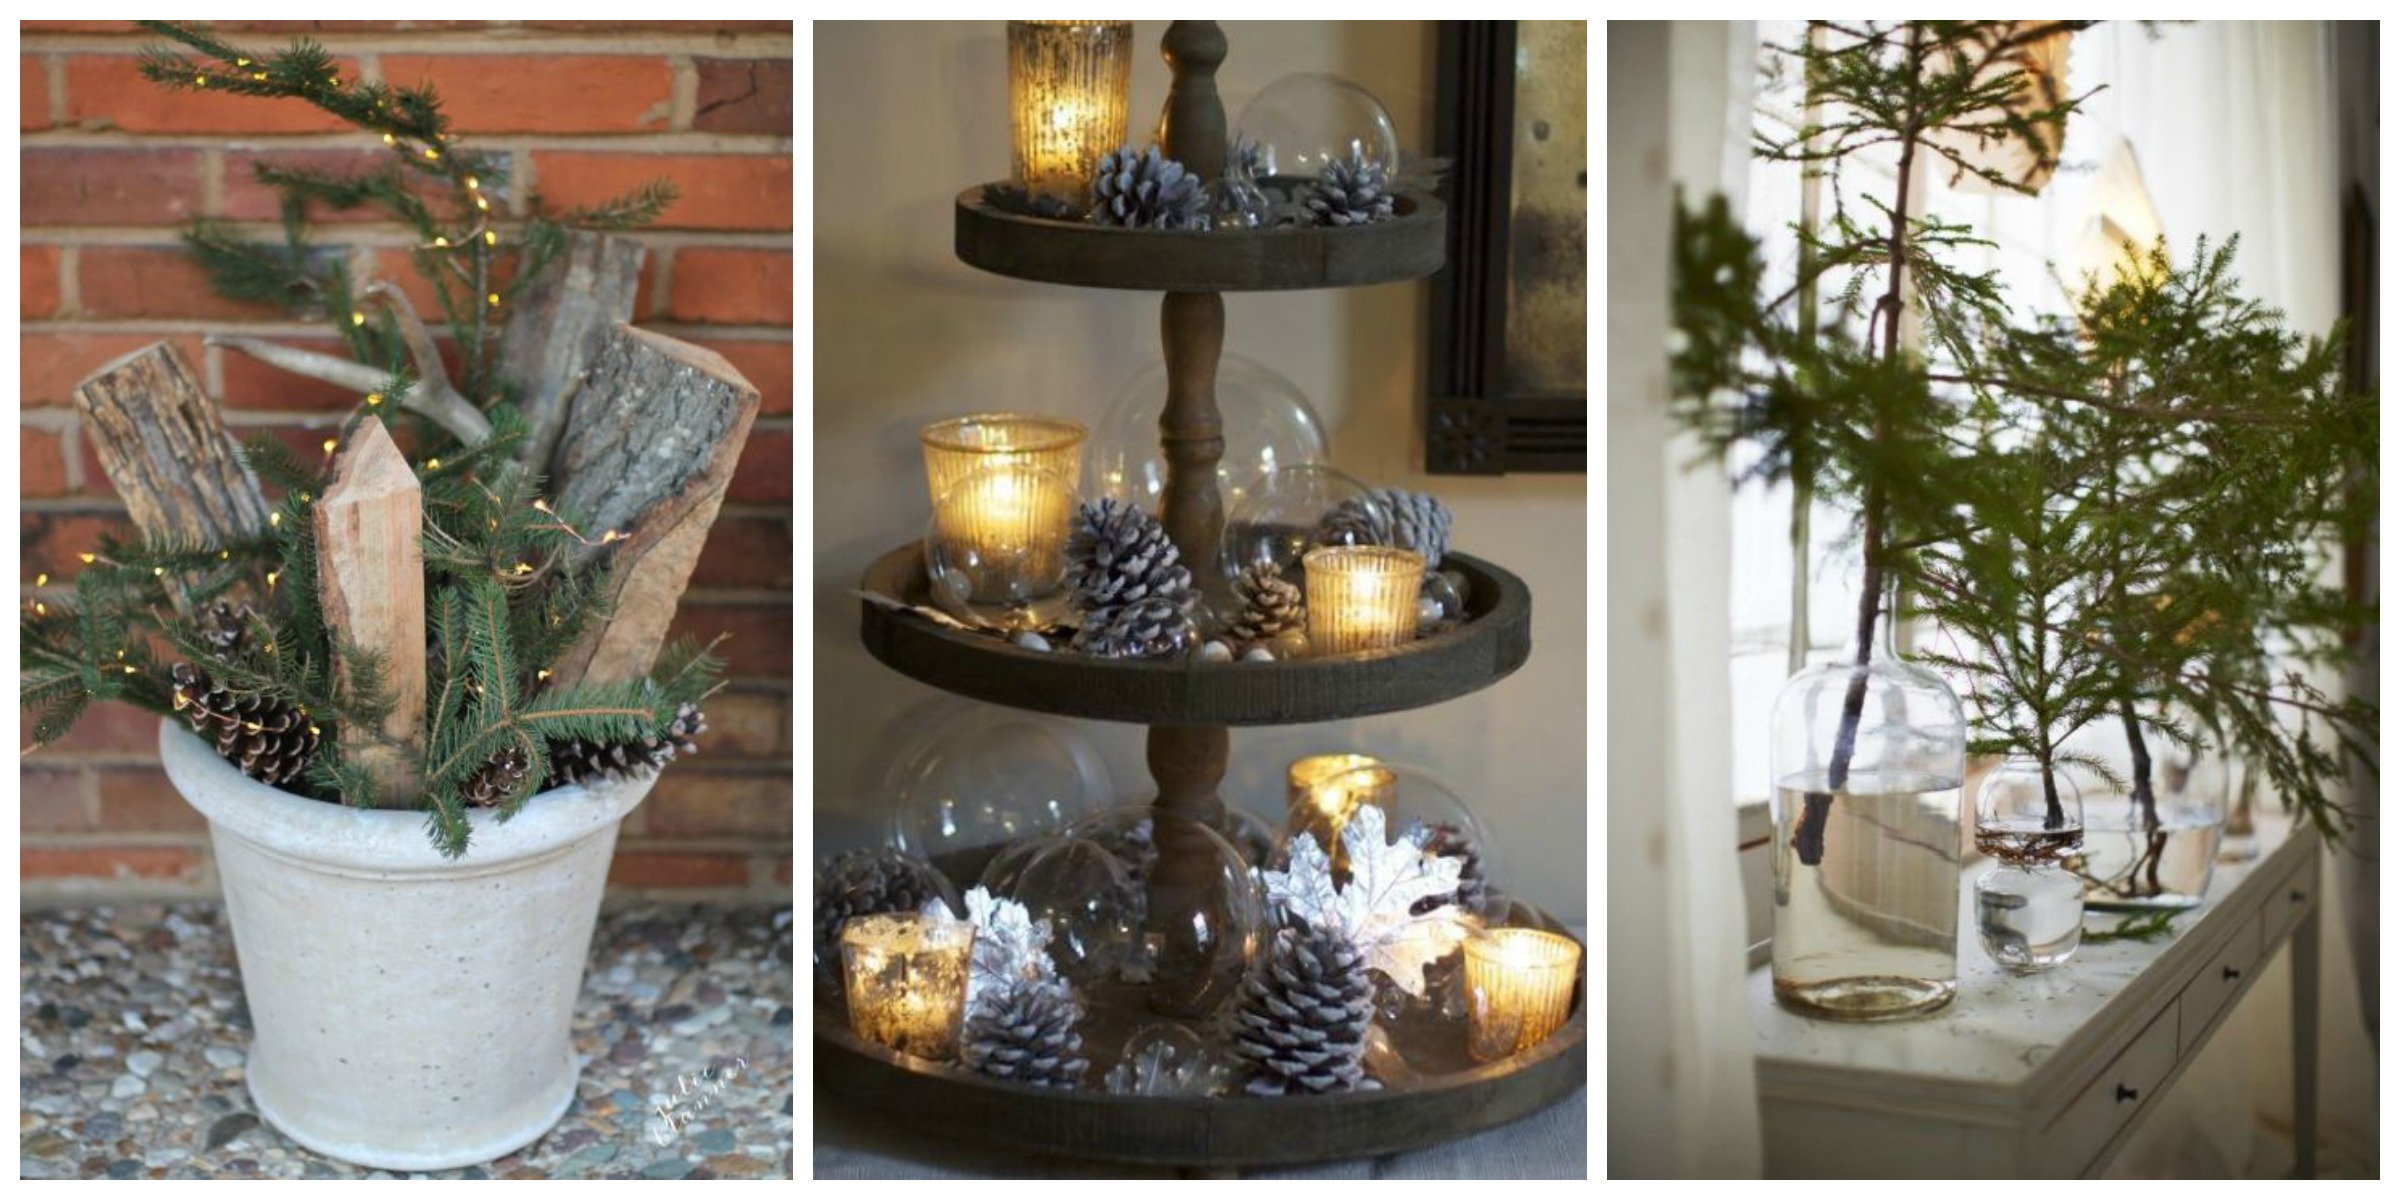 Best Winter Decorating Ideas How To Decorate Your Home For Winter This Month